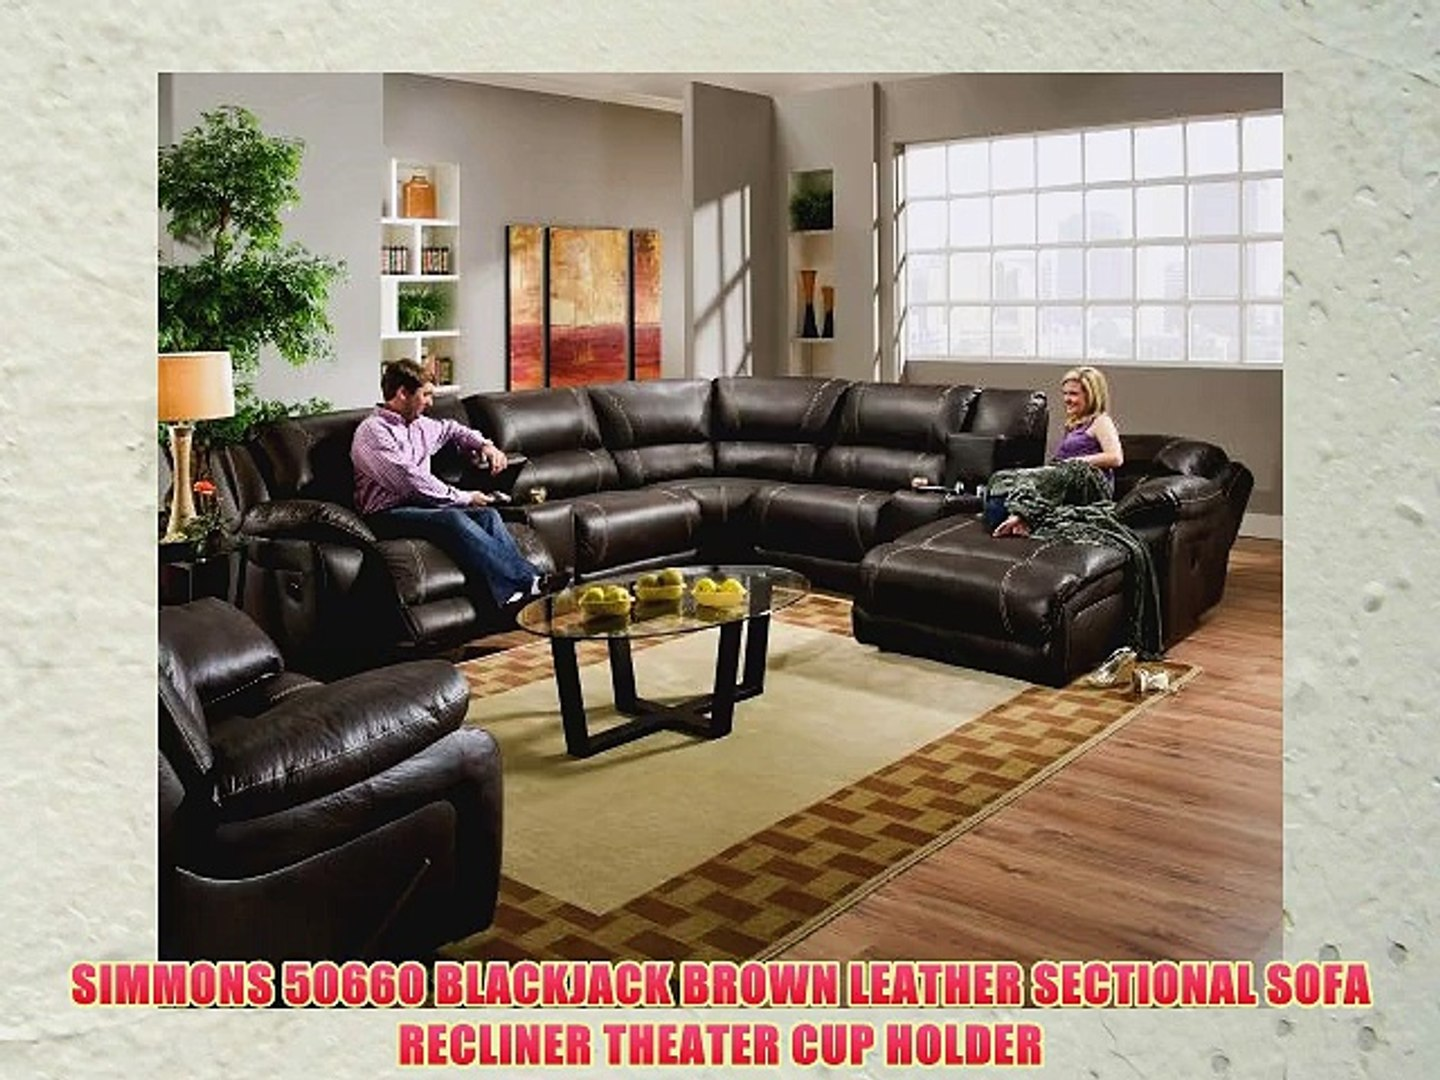 Surprising Simmons 50660 Blackjack Brown Leather Sectional Sofa Recliner Theater Cup Holder Pabps2019 Chair Design Images Pabps2019Com